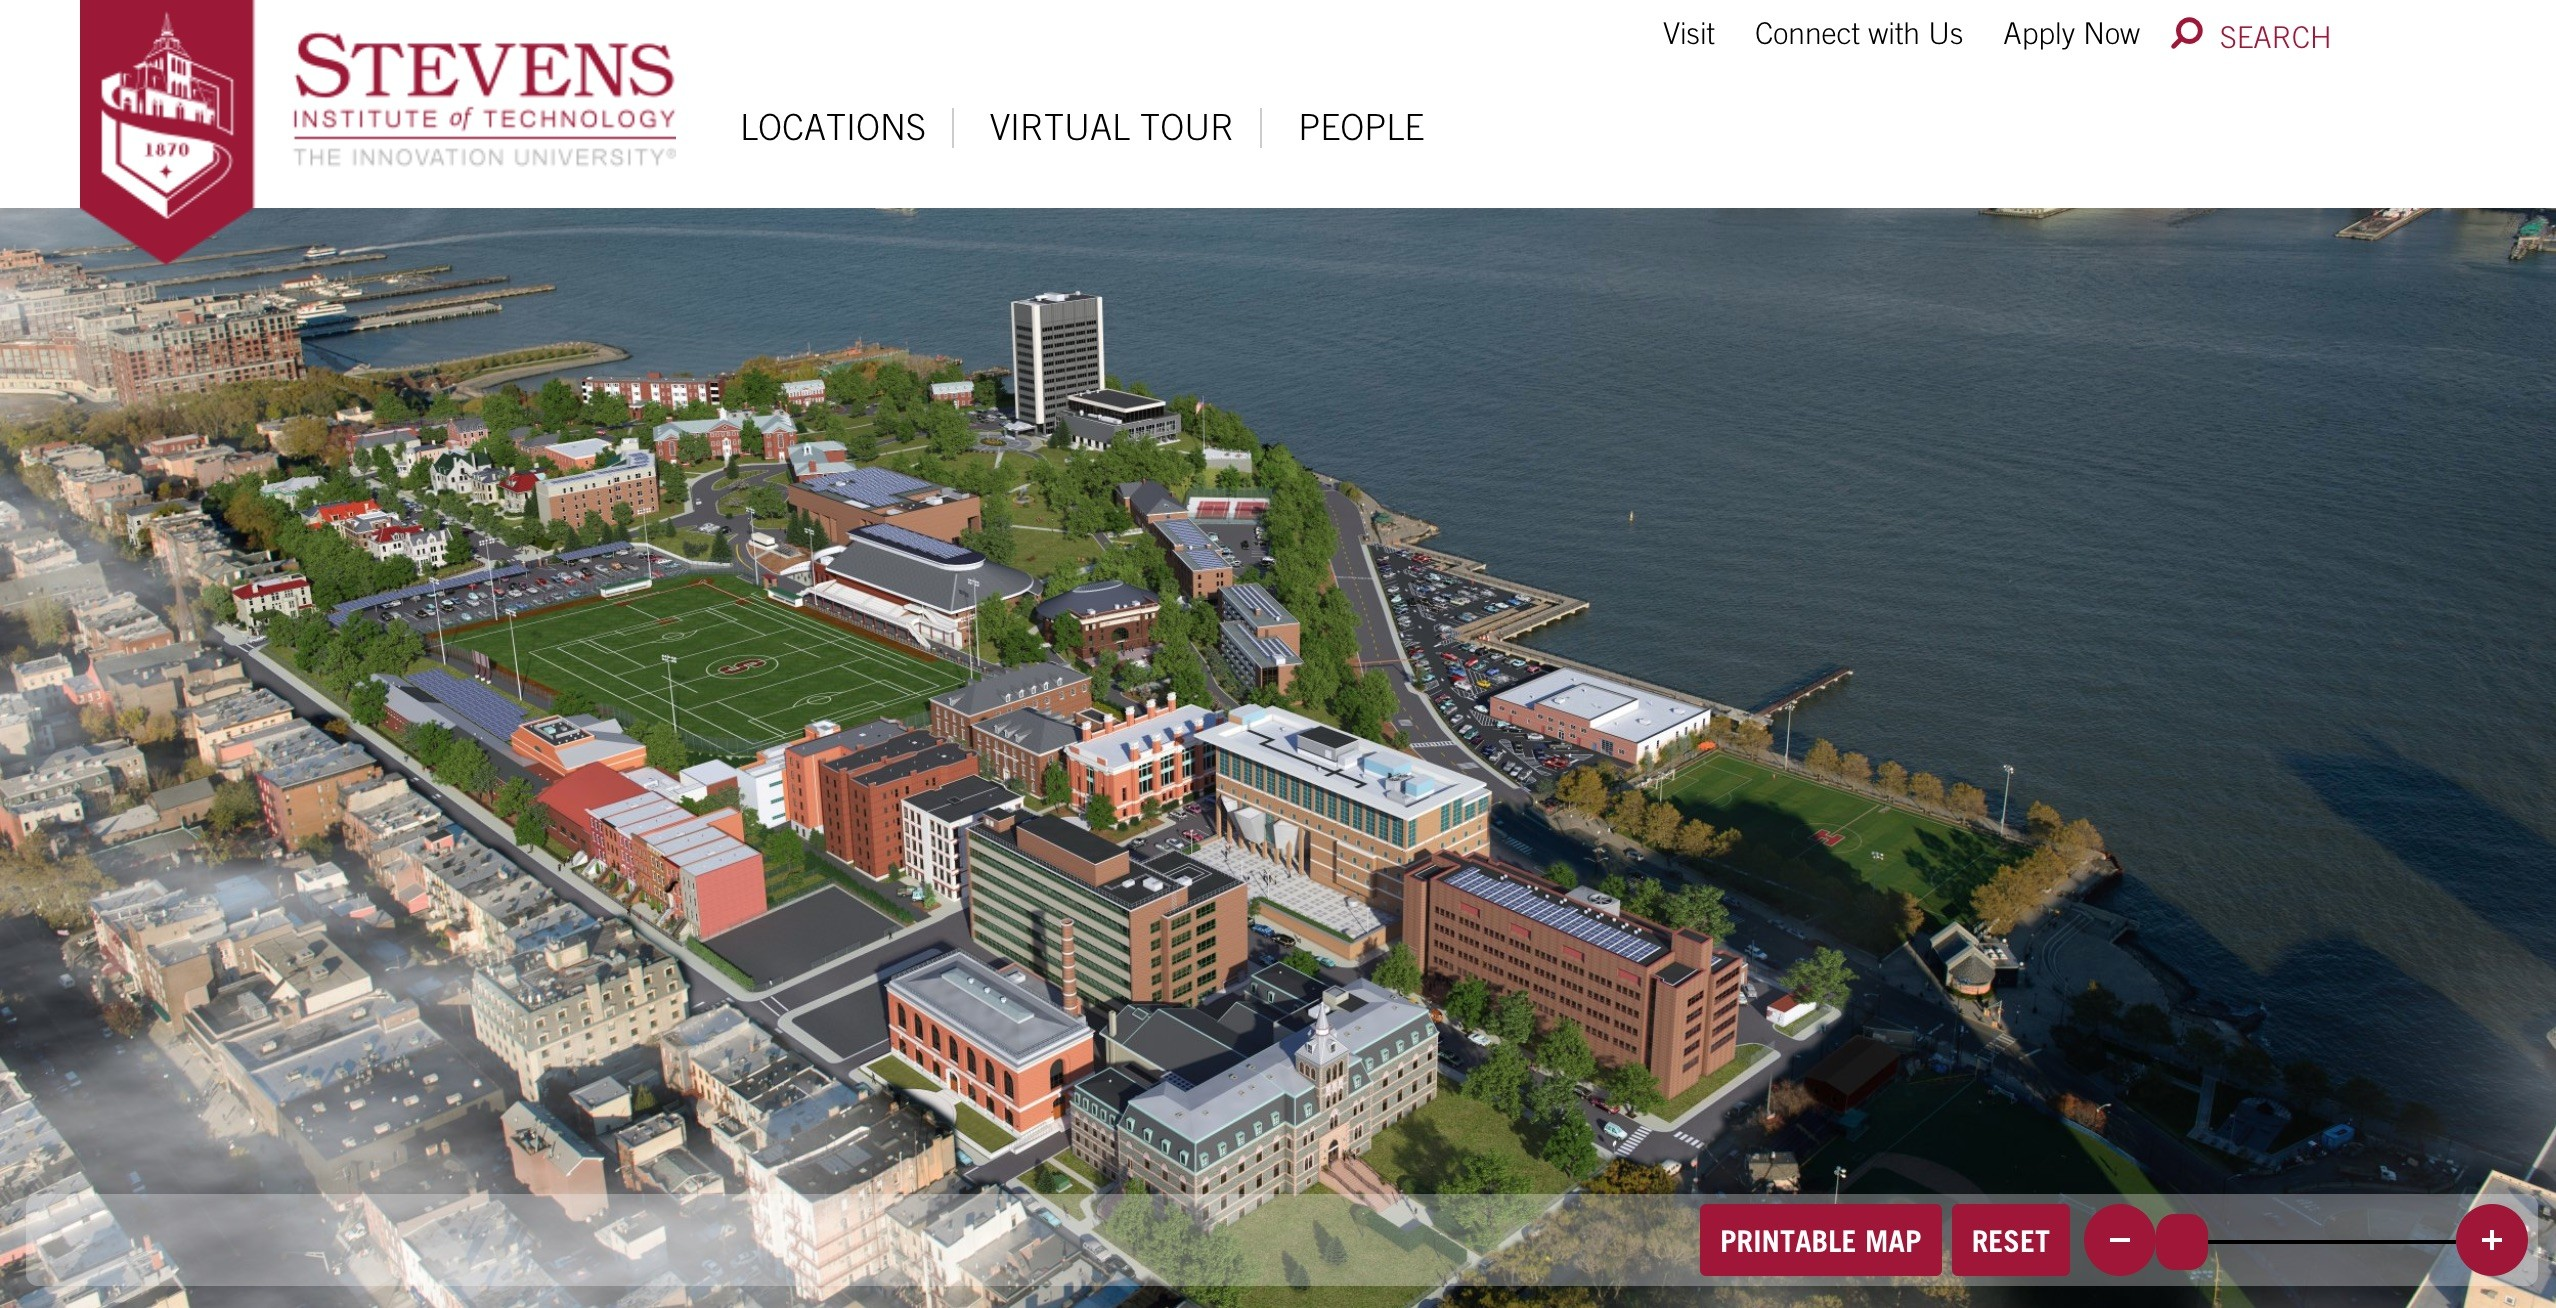 stevens institute of technology campus map Stevens Institute Of Technology Launches Virtual Tour And stevens institute of technology campus map